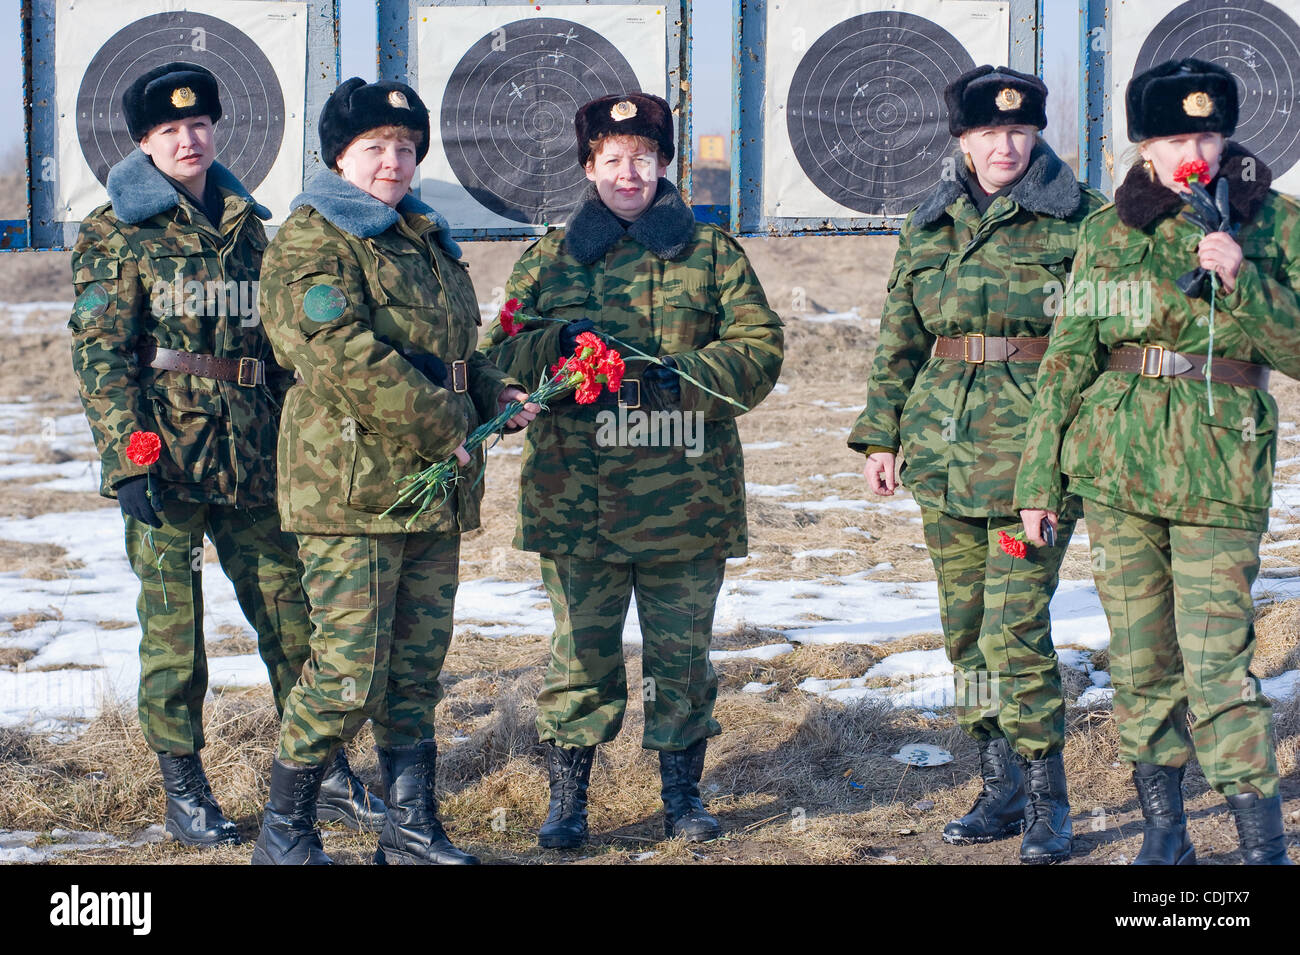 Women - soldiers of Russian Army at the shooting range of Khmelyovka military base in Kaliningrad region of Russia. - Stock Image